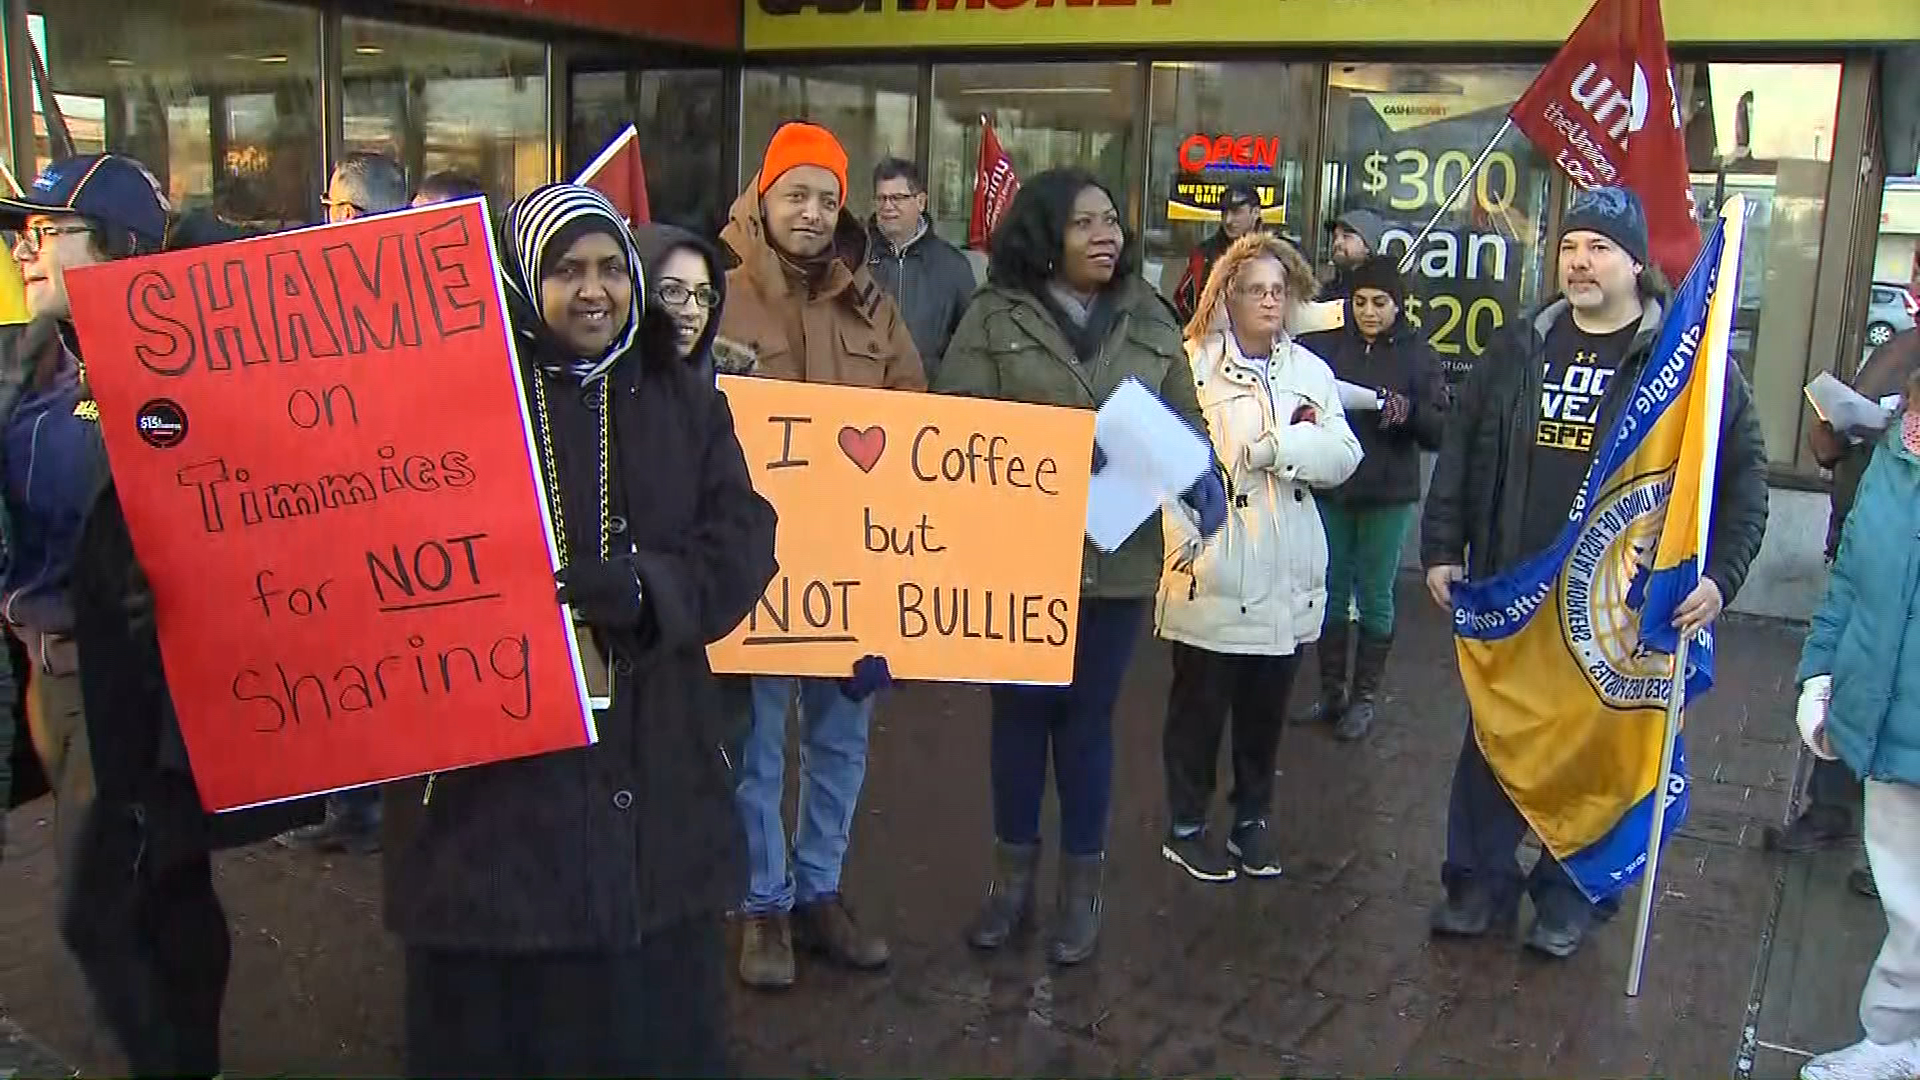 c5757fbdb03 Protests planned at Tim Hortons over cuts to paid breaks